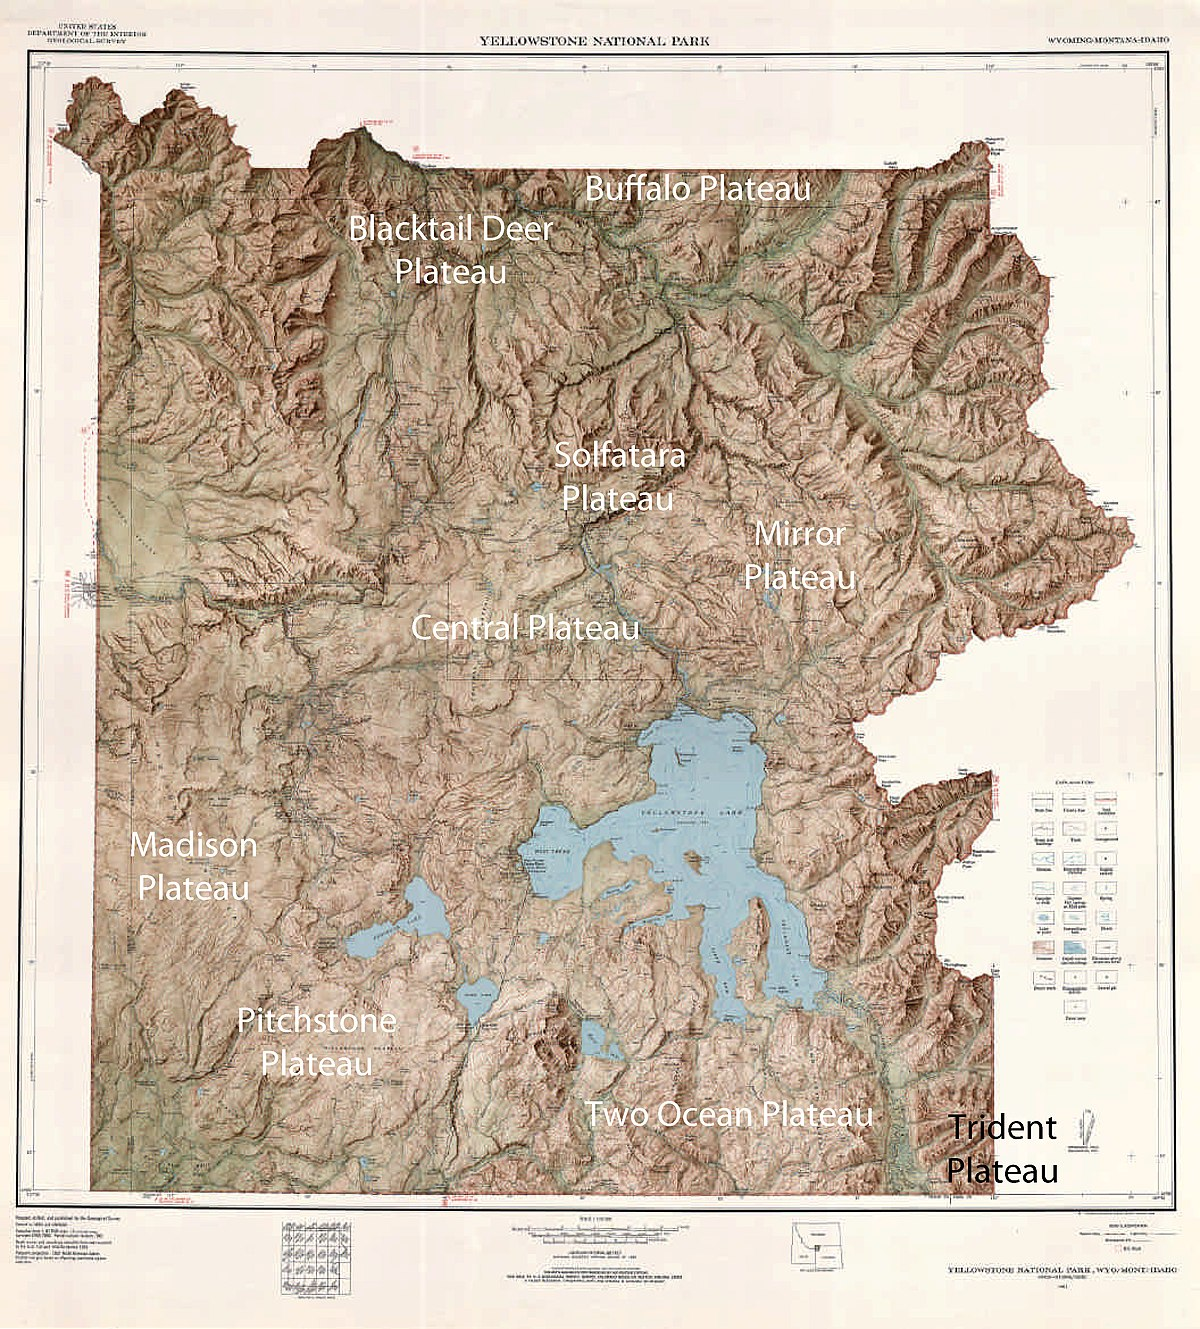 Plateaus of yellowstone national park wikipedia sciox Choice Image